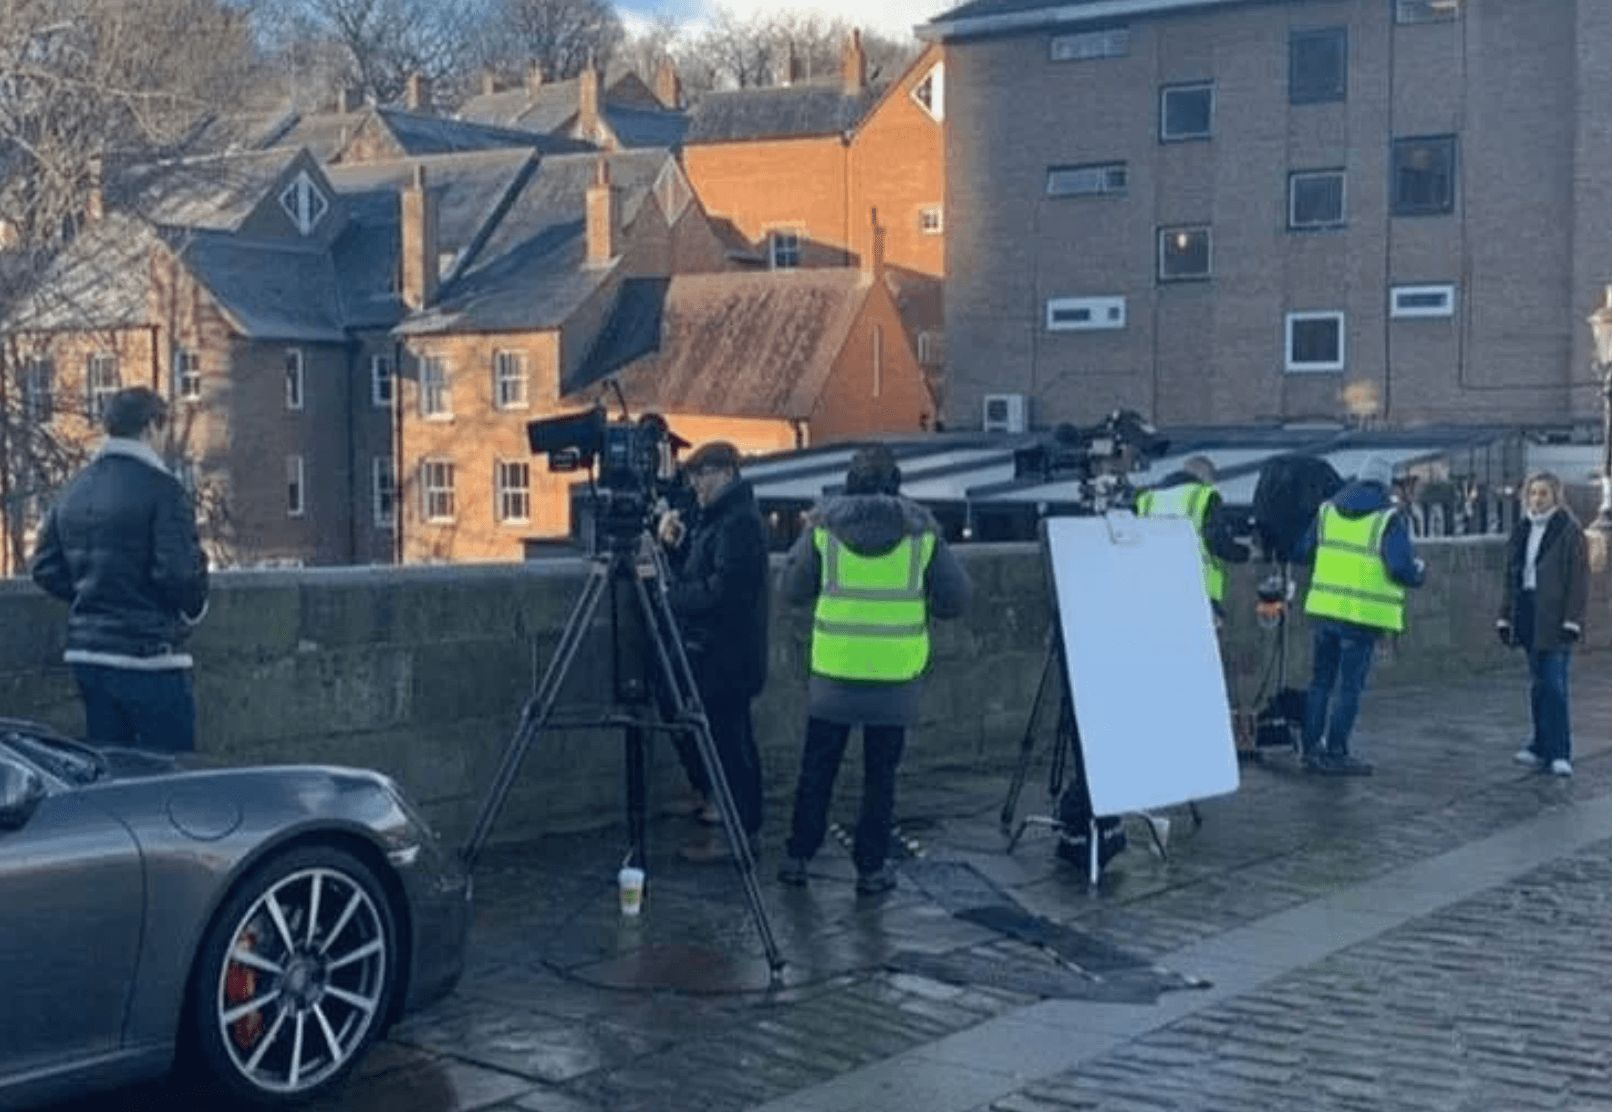 Image may contain: Made in Chelsea is staged, Made in Chelsea, MIC, Tripod, Automobile, Transportation, Vehicle, Car, Human, Person